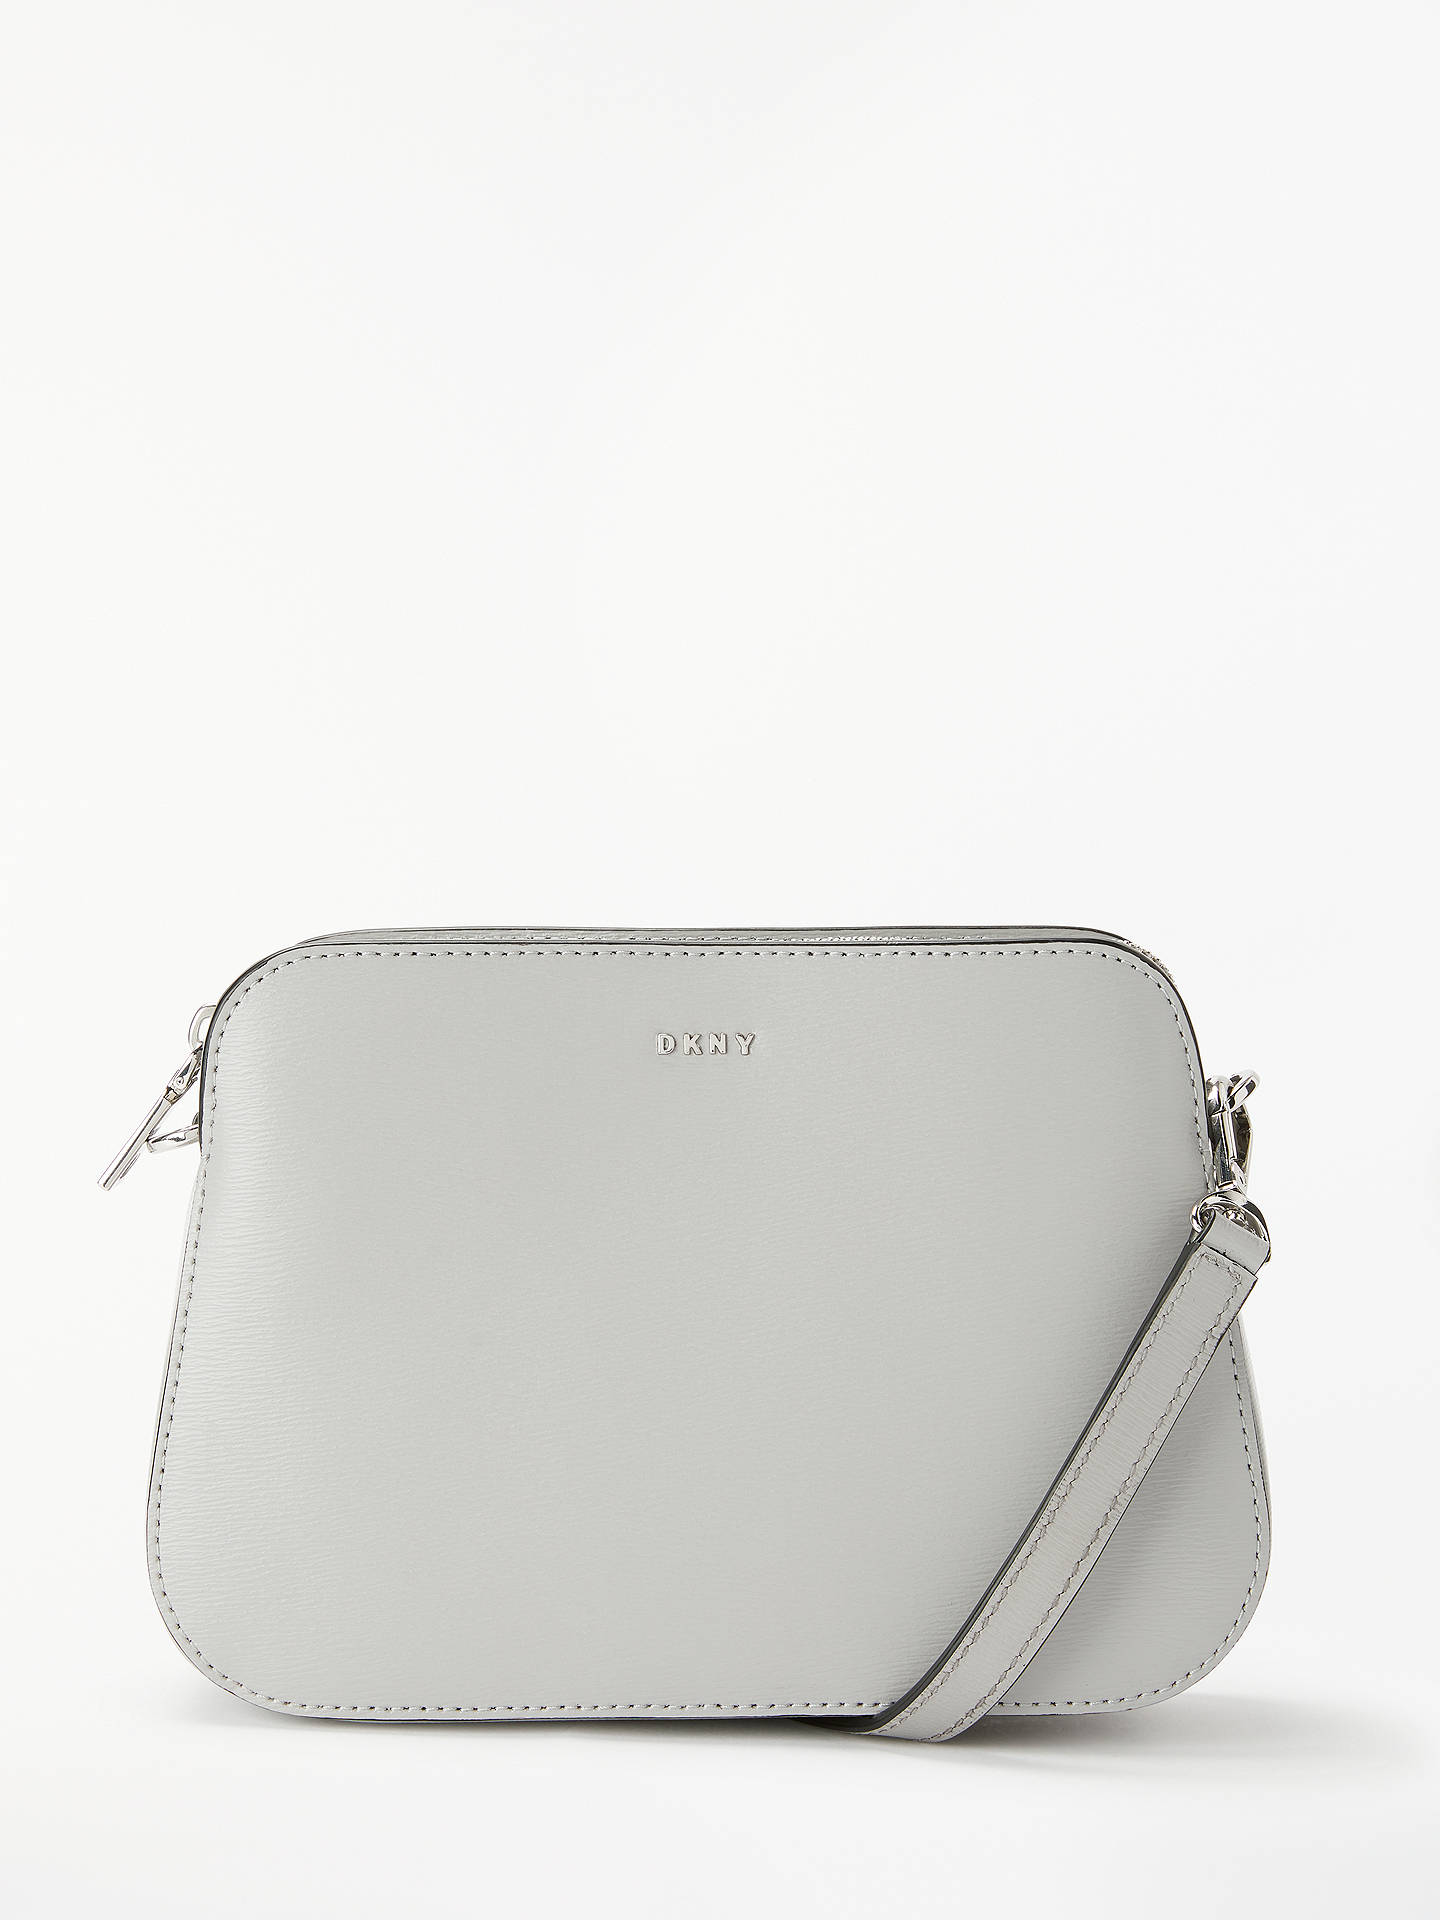 26ab3b777 Buy DKNY Bryant Leather Central Zip Cross Body Bag, Mid Grey Online at  johnlewis.